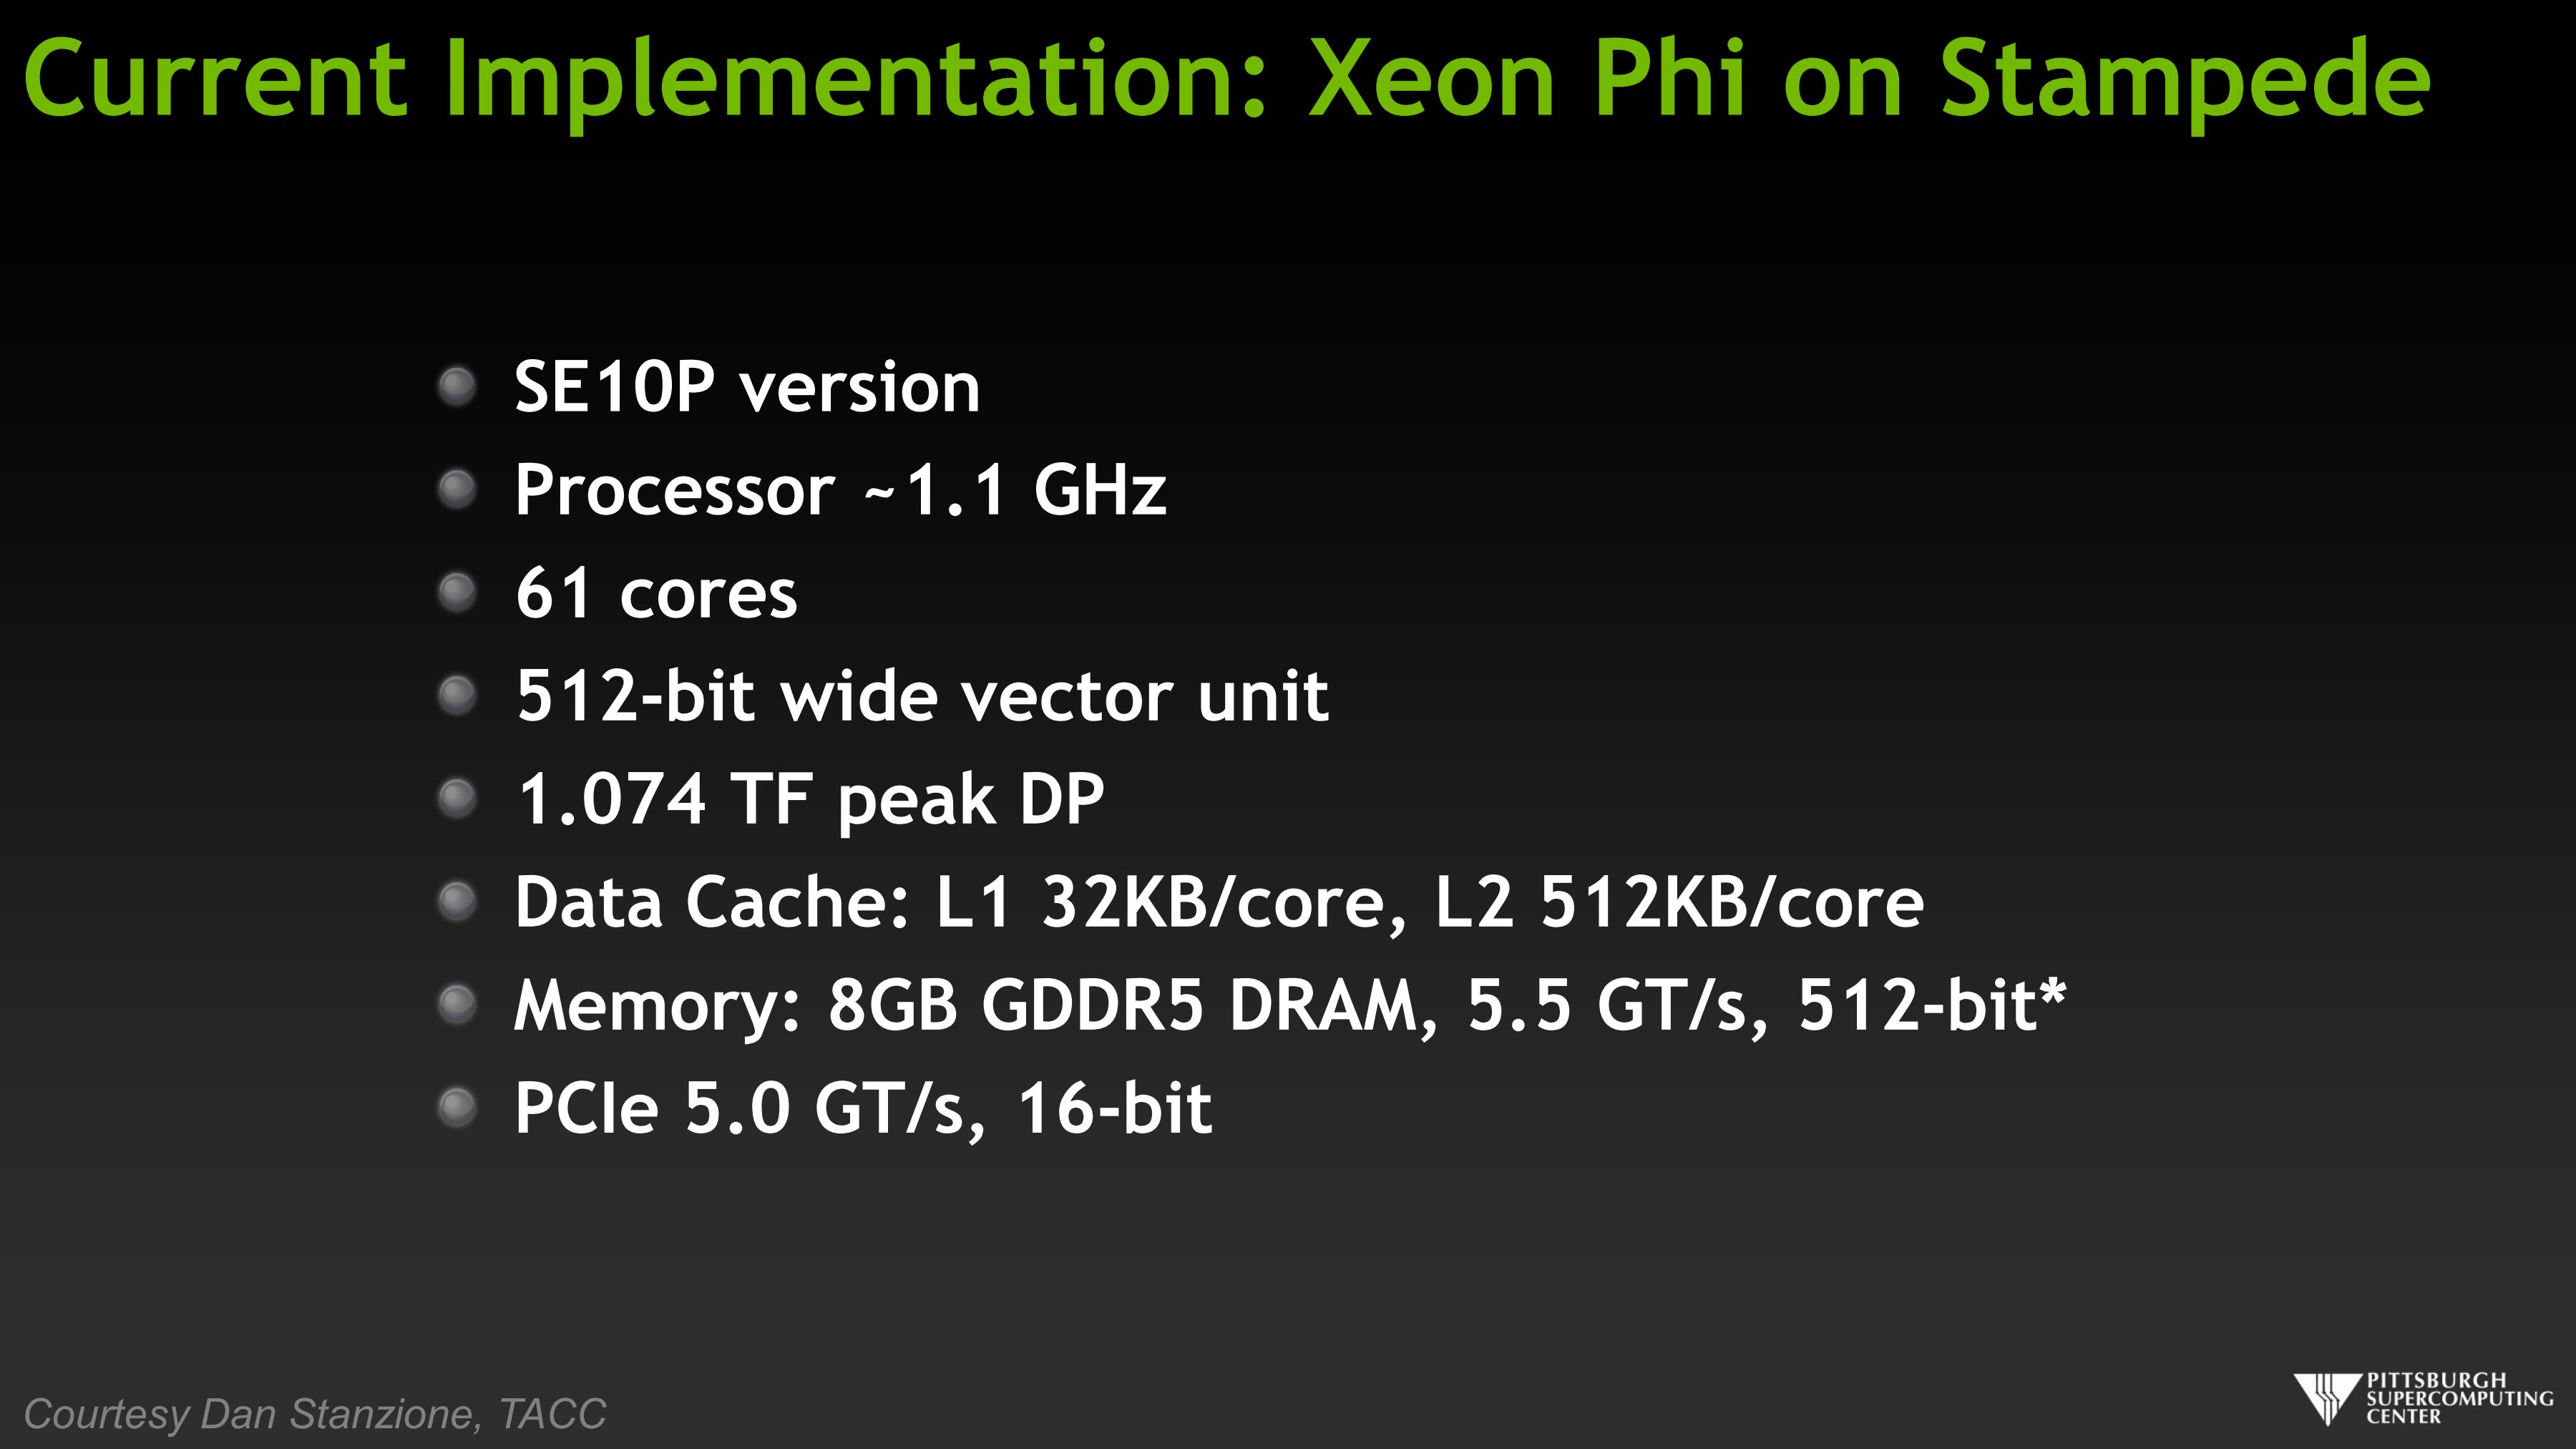 Current Implementation: Xeon Phi and Stampede